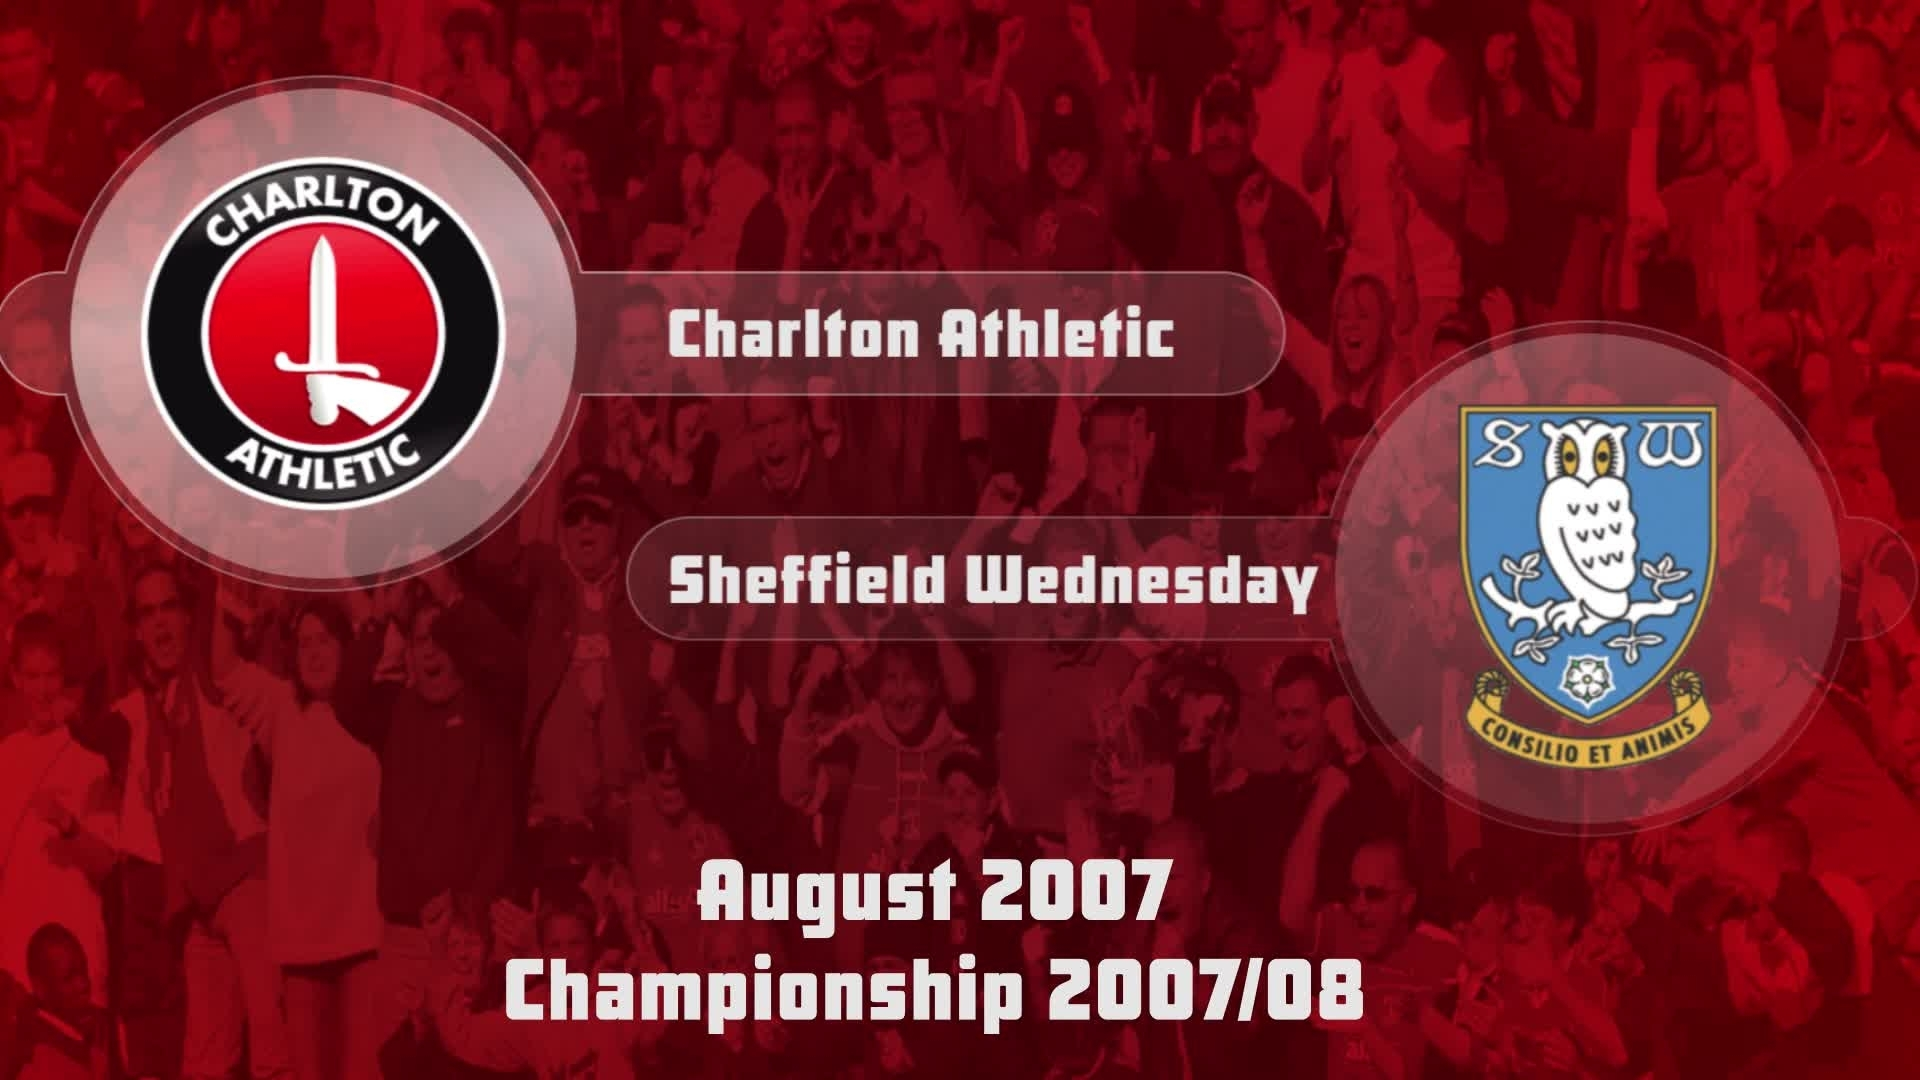 04 HIGHLIGHTS | Charlton 3 Sheffield Wednesday 2 (Aug 2007)